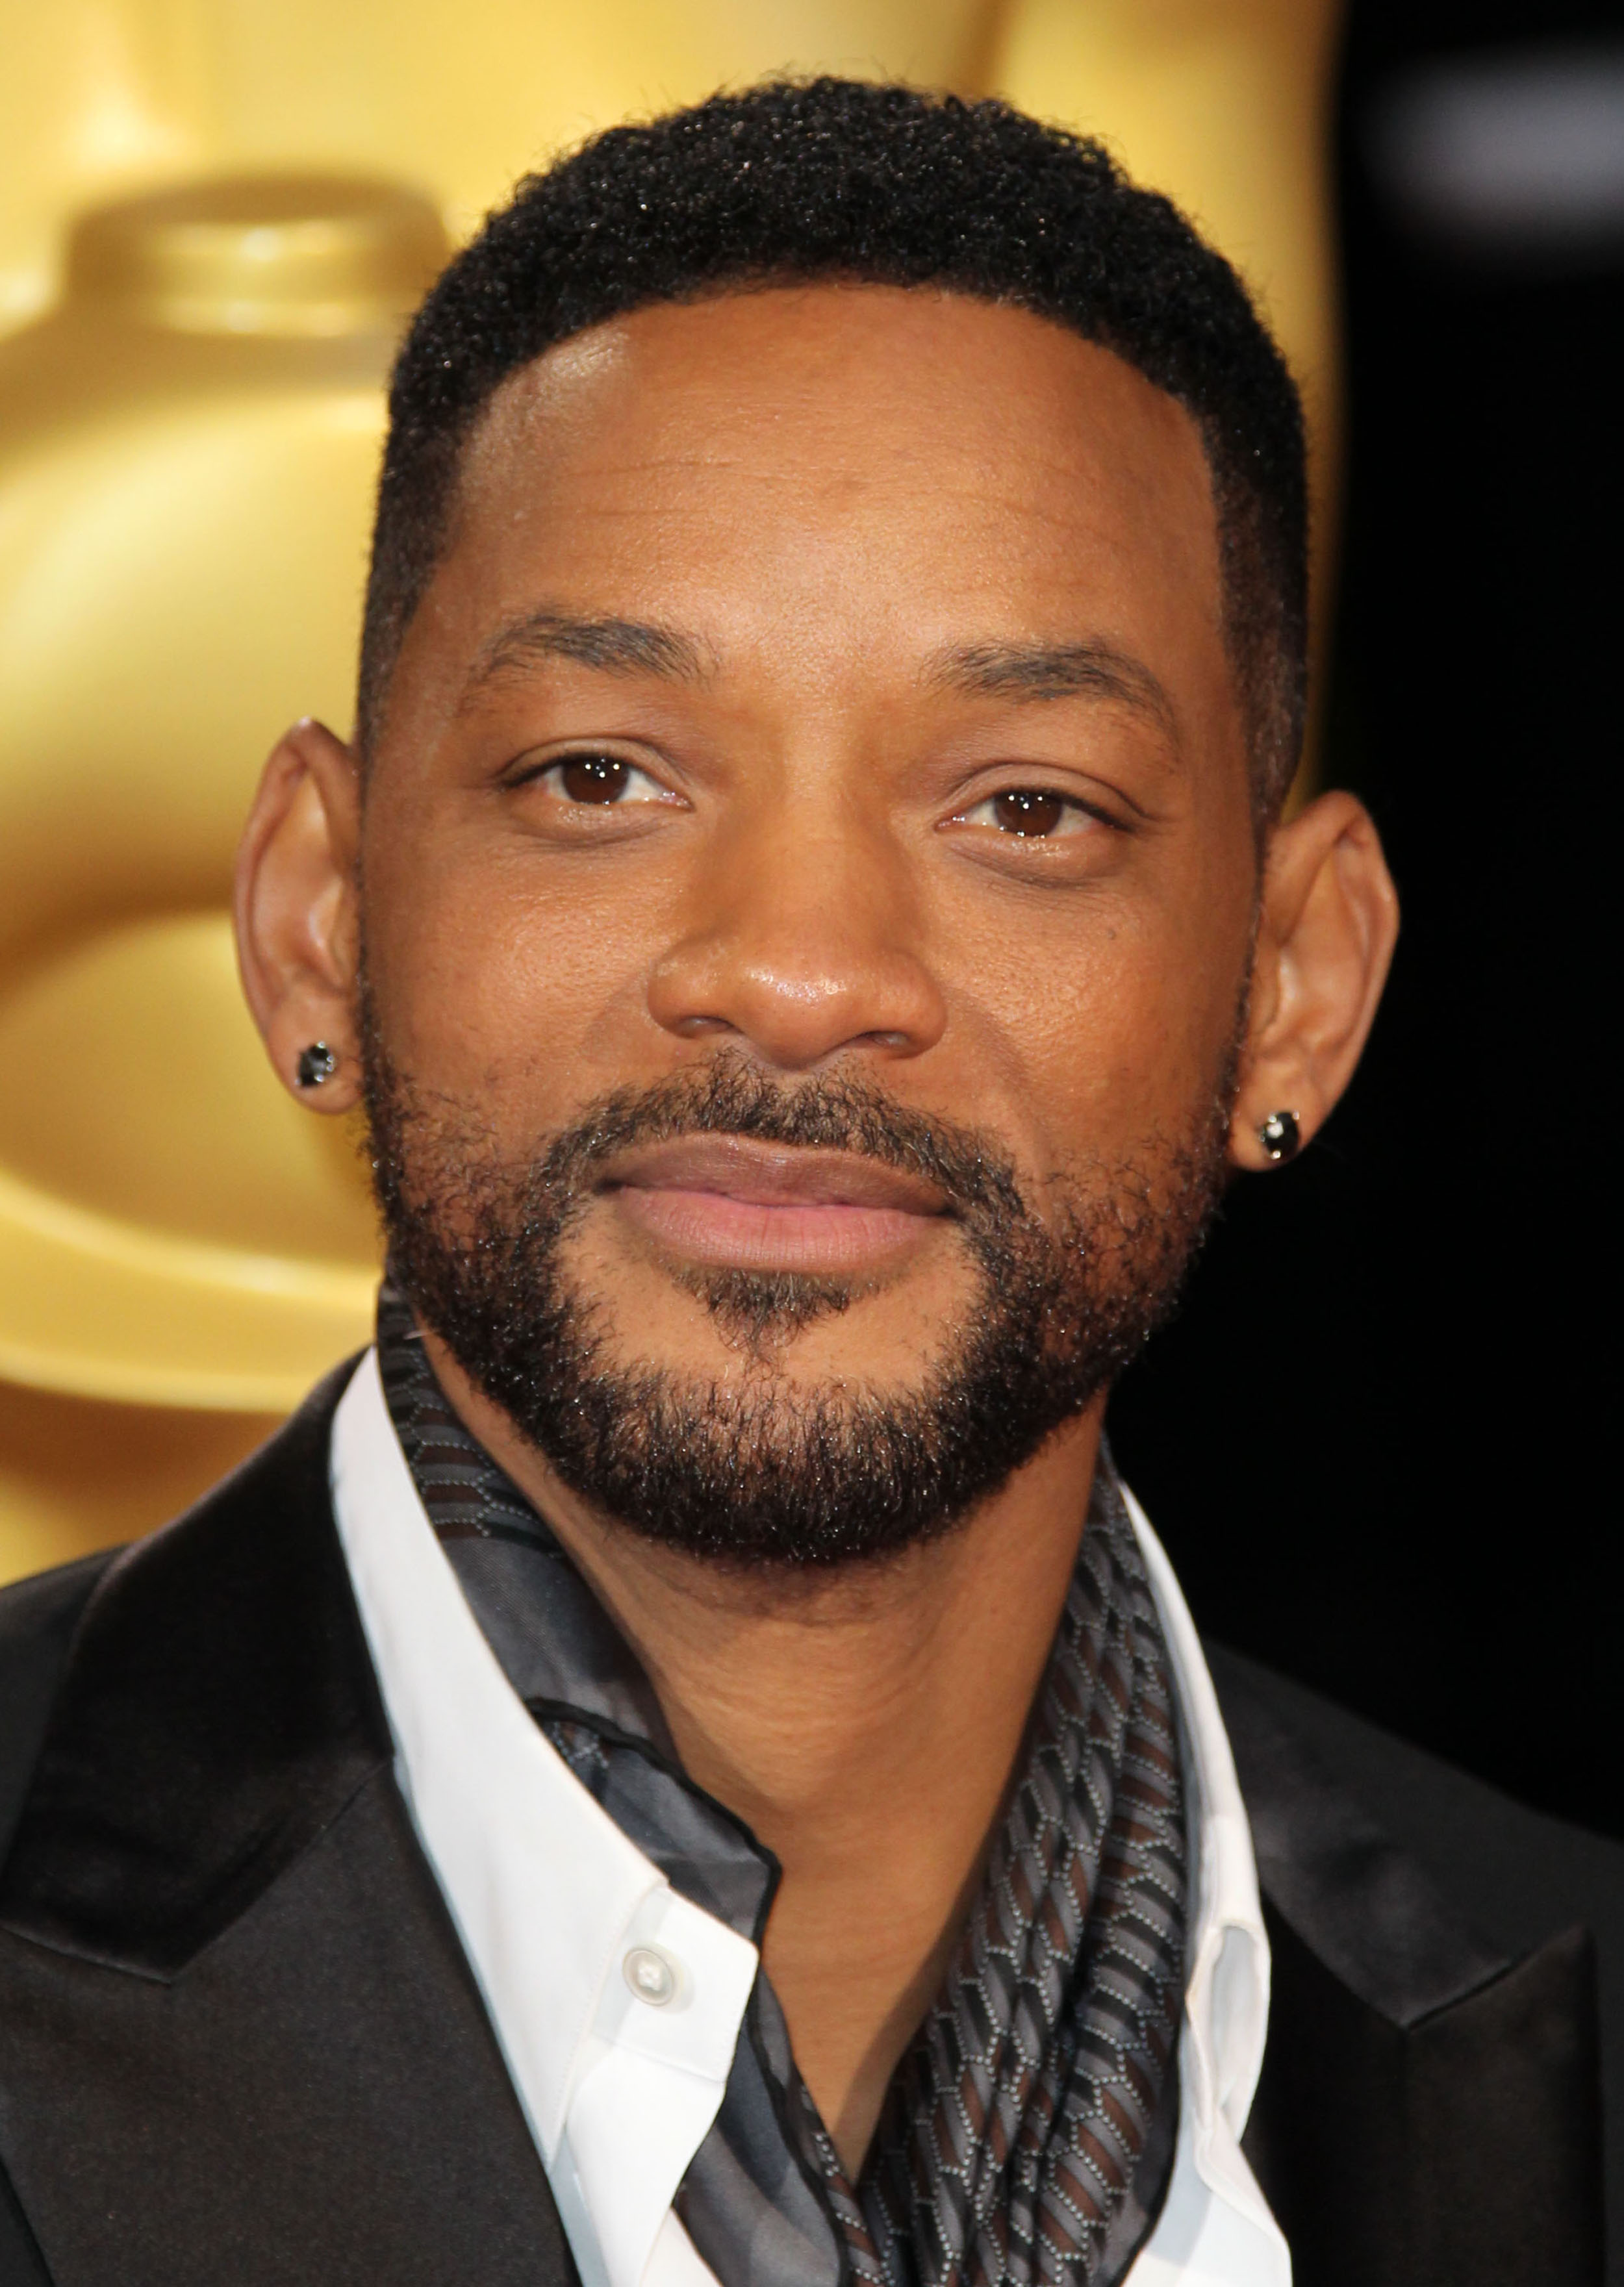 Will Smith Wallpapers High Quality Download 2500x3521